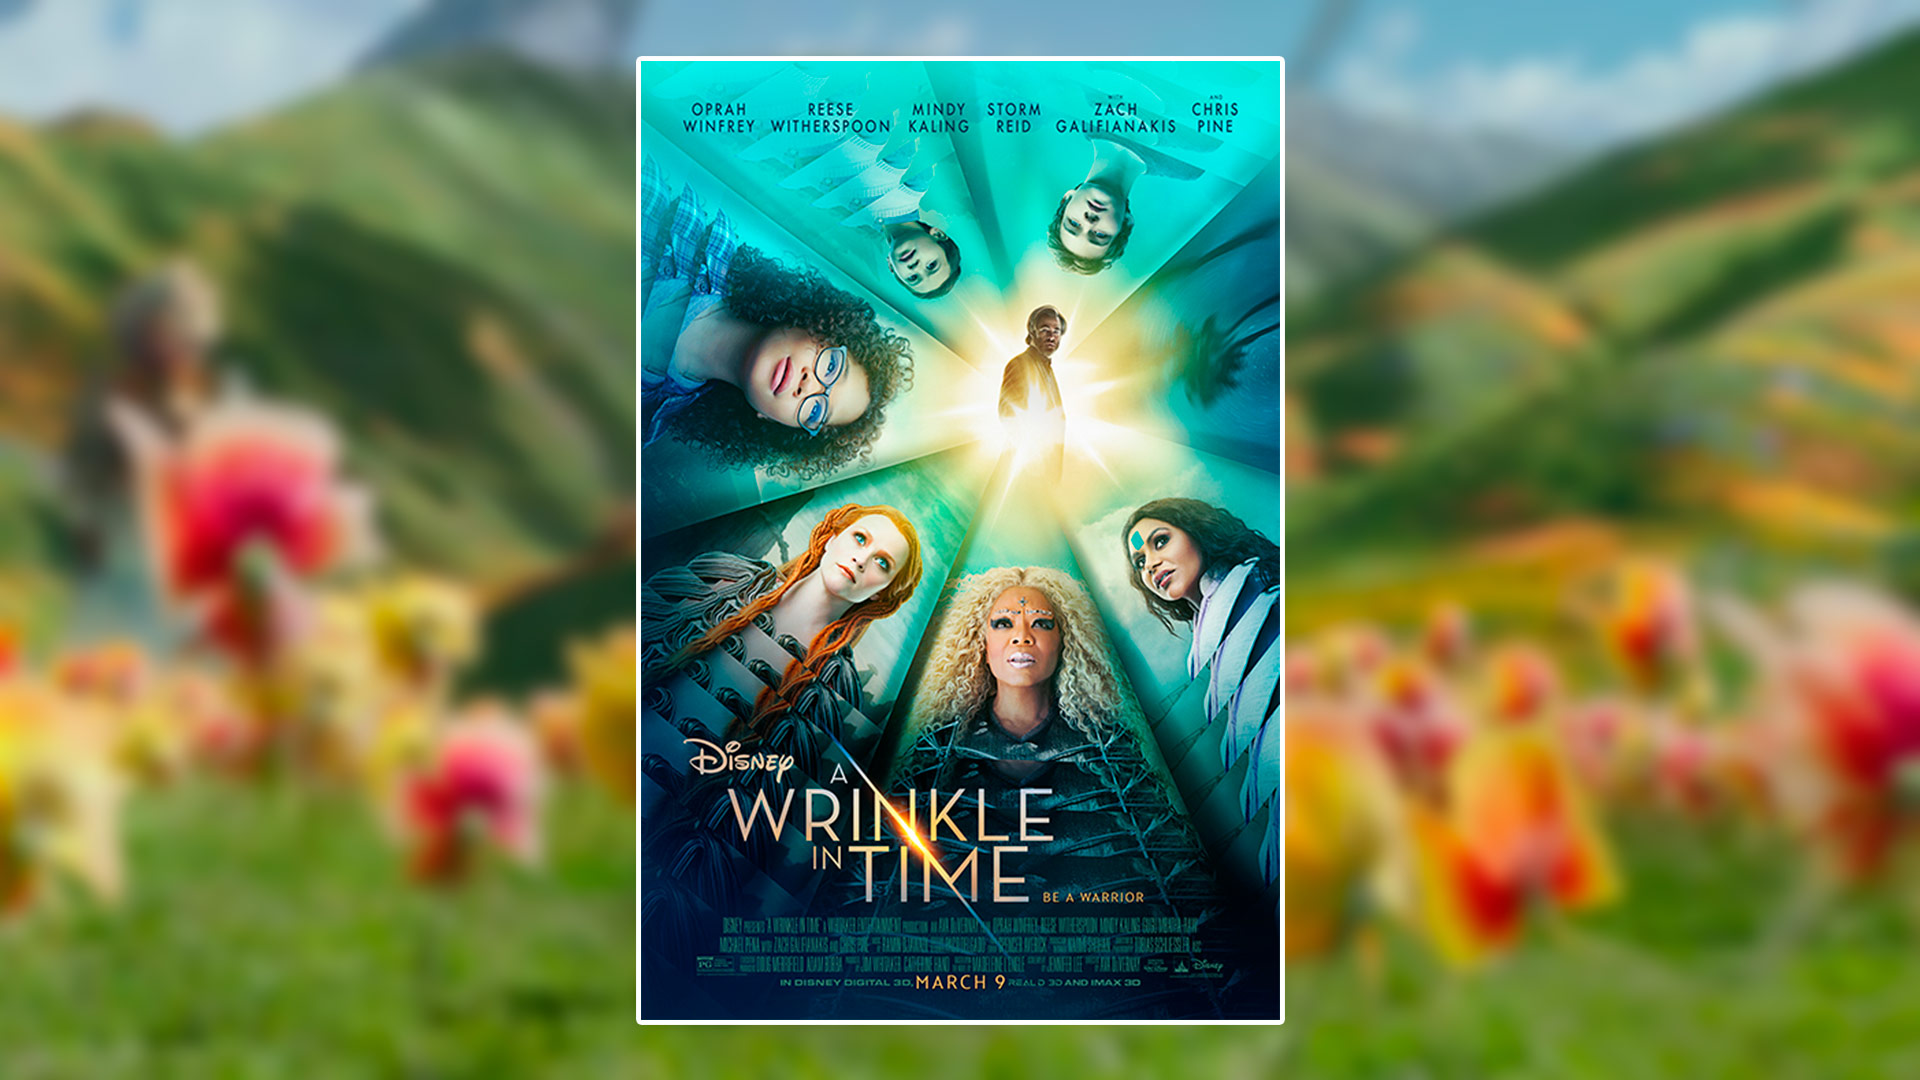 Critique du film A Wrinkle in Time avec Reese Witherspoon